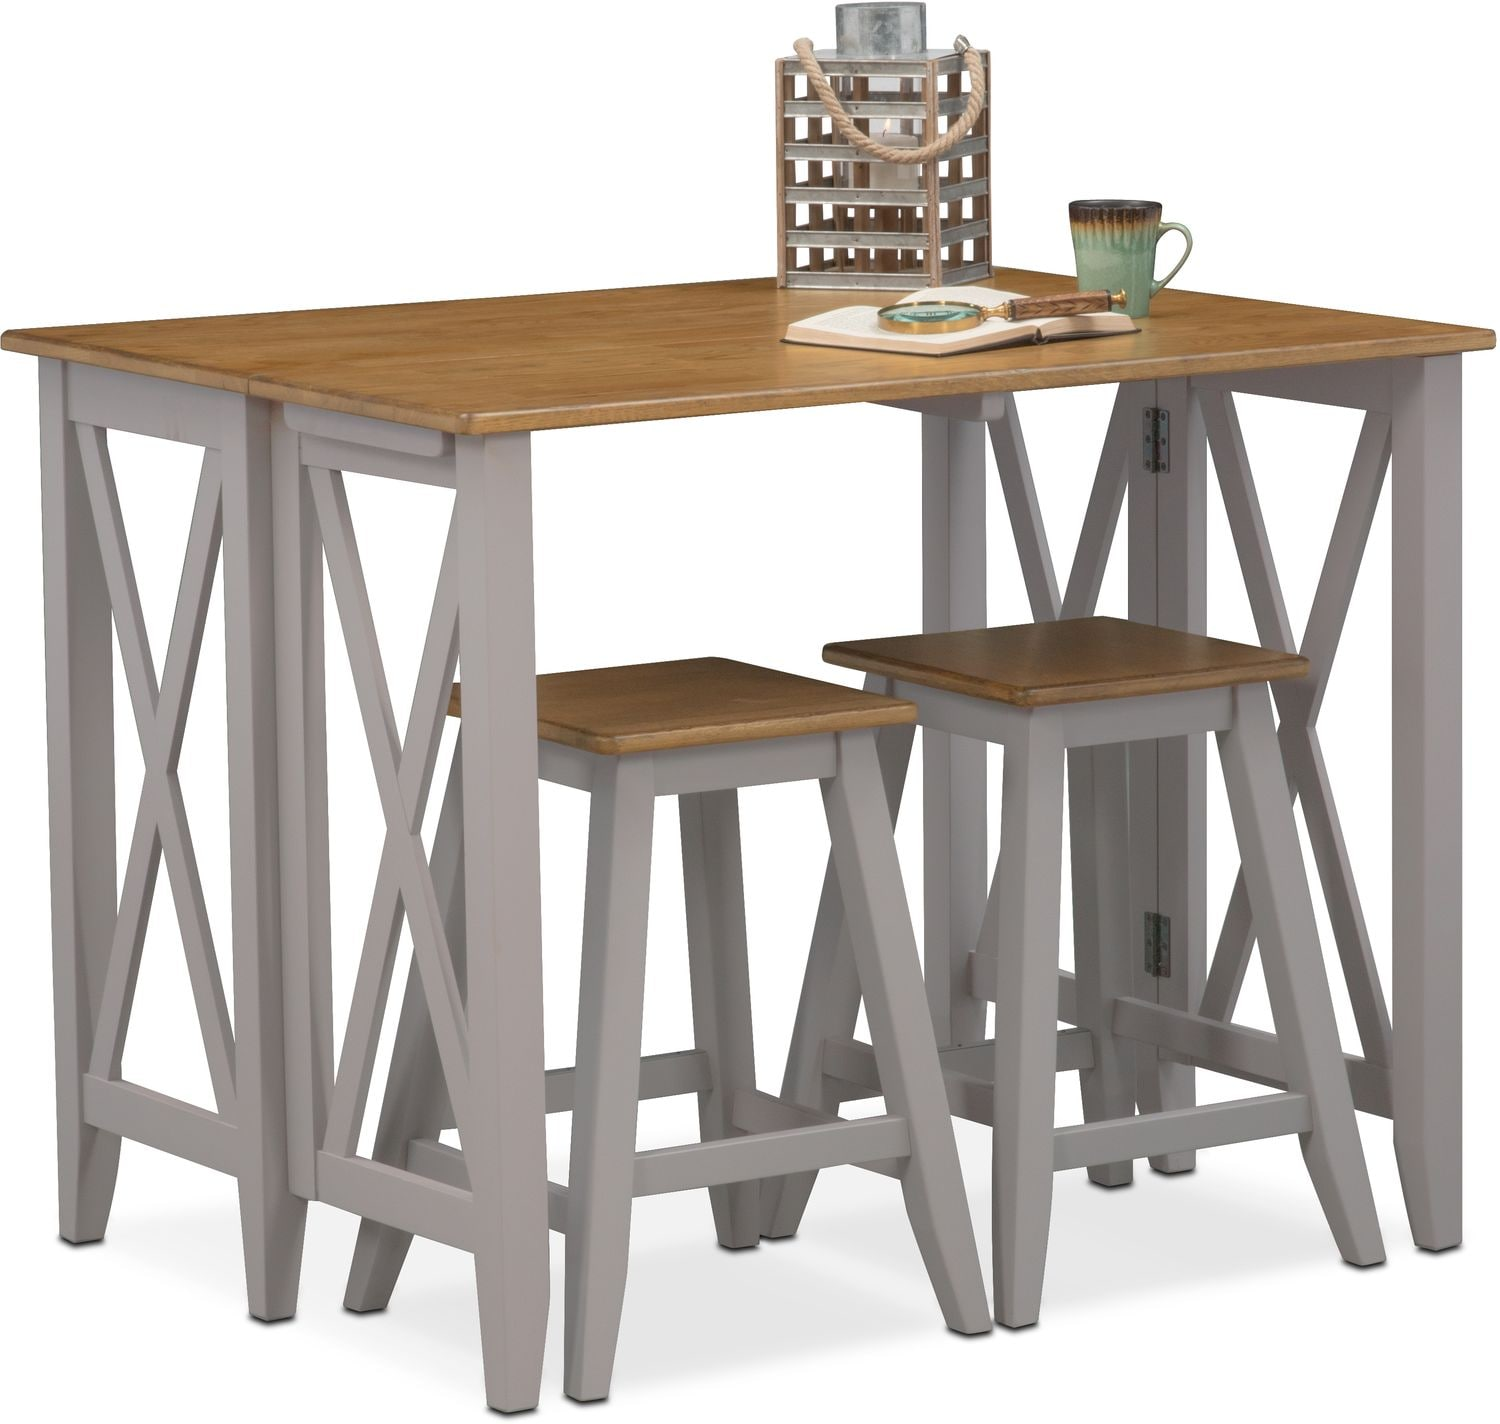 Newcastle Counter Height Dining Table 2 Chairs 2 Stools: Nantucket Breakfast Bar And 2 Counter-Height Stools